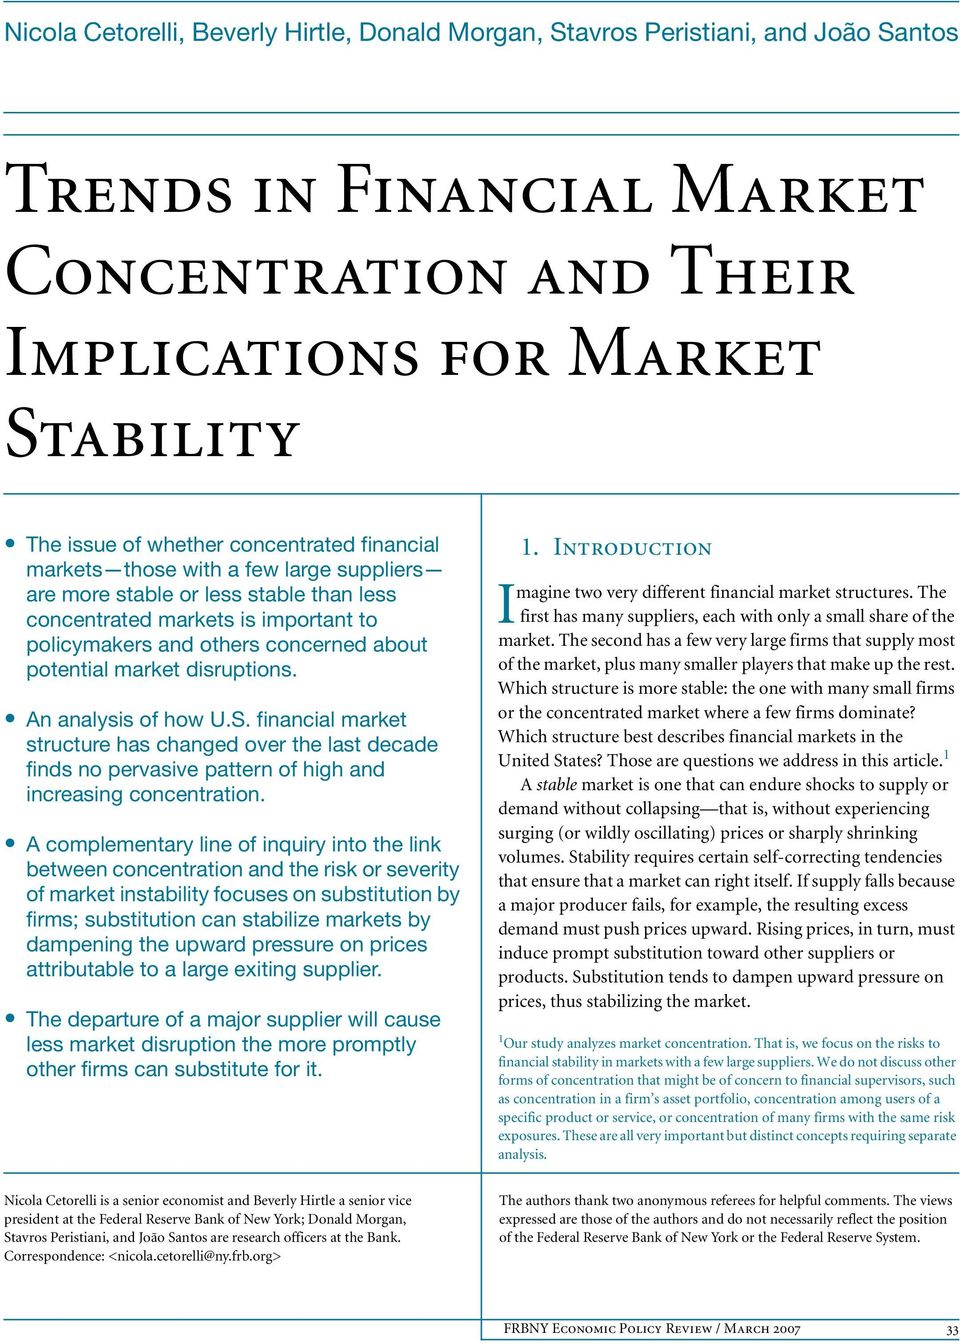 disruptions. An analysis of how U.S. financial market structure has changed over the last decade finds no pervasive pattern of high and increasing concentration.